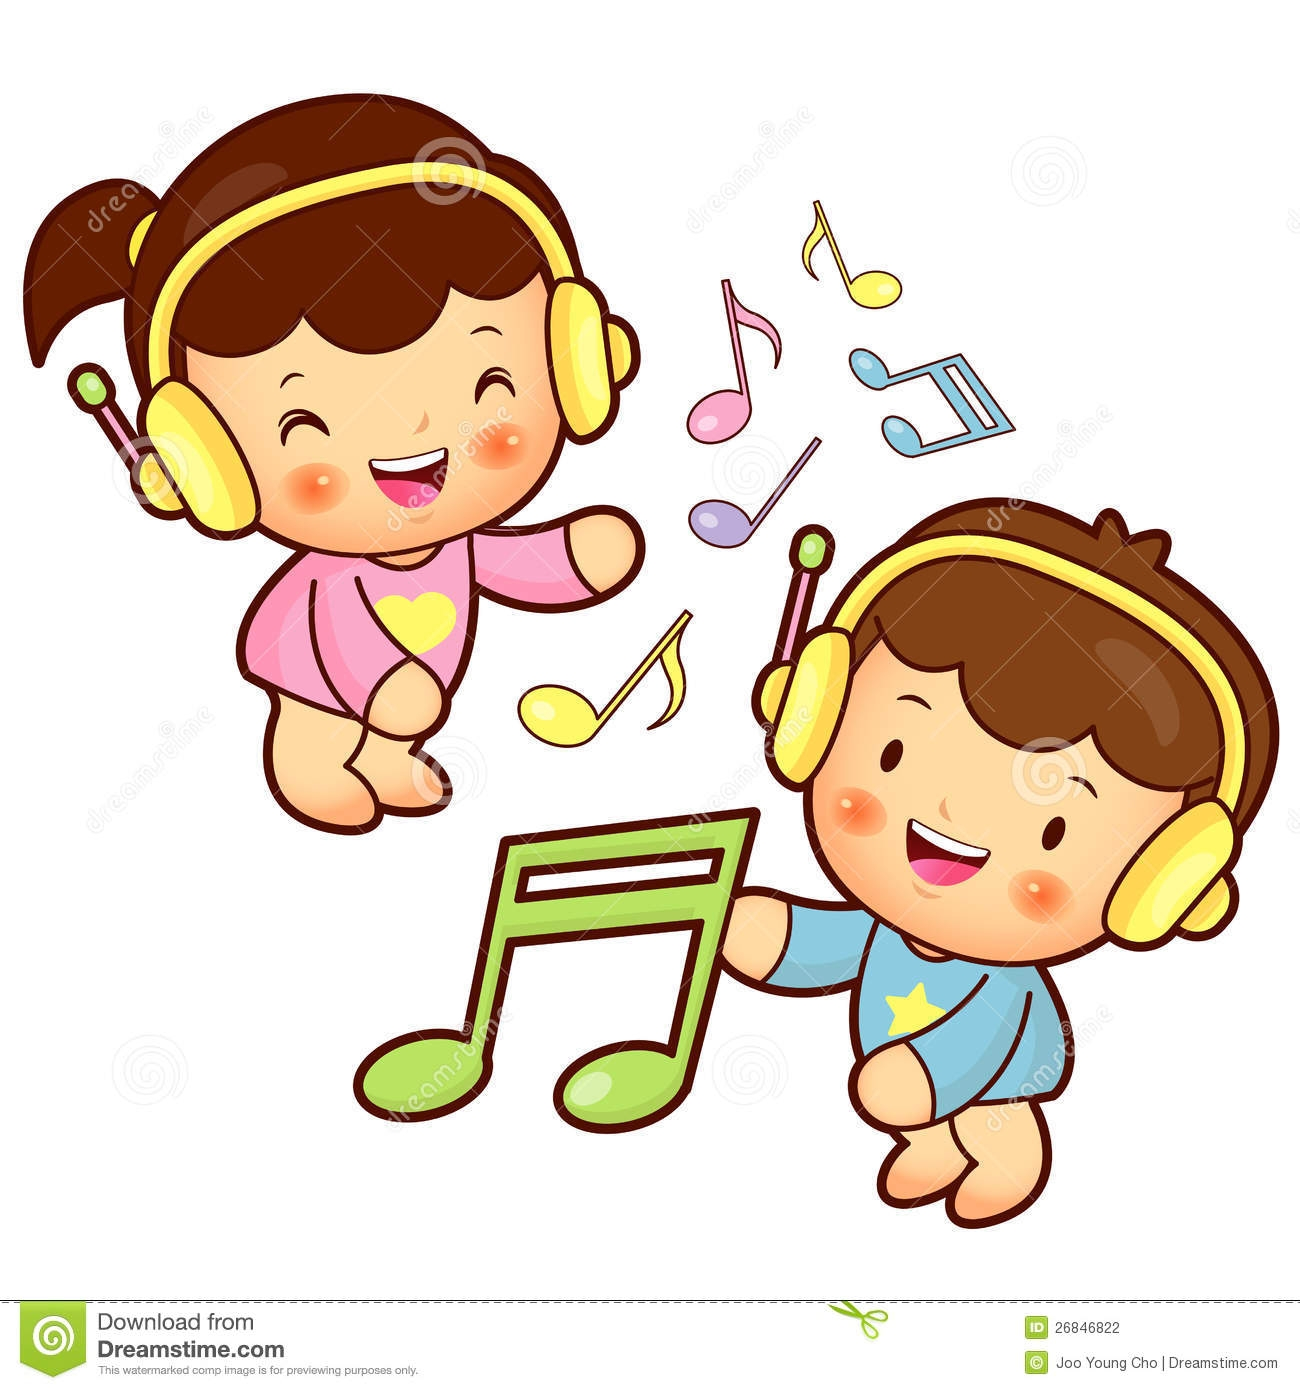 Enjoying music clipart.